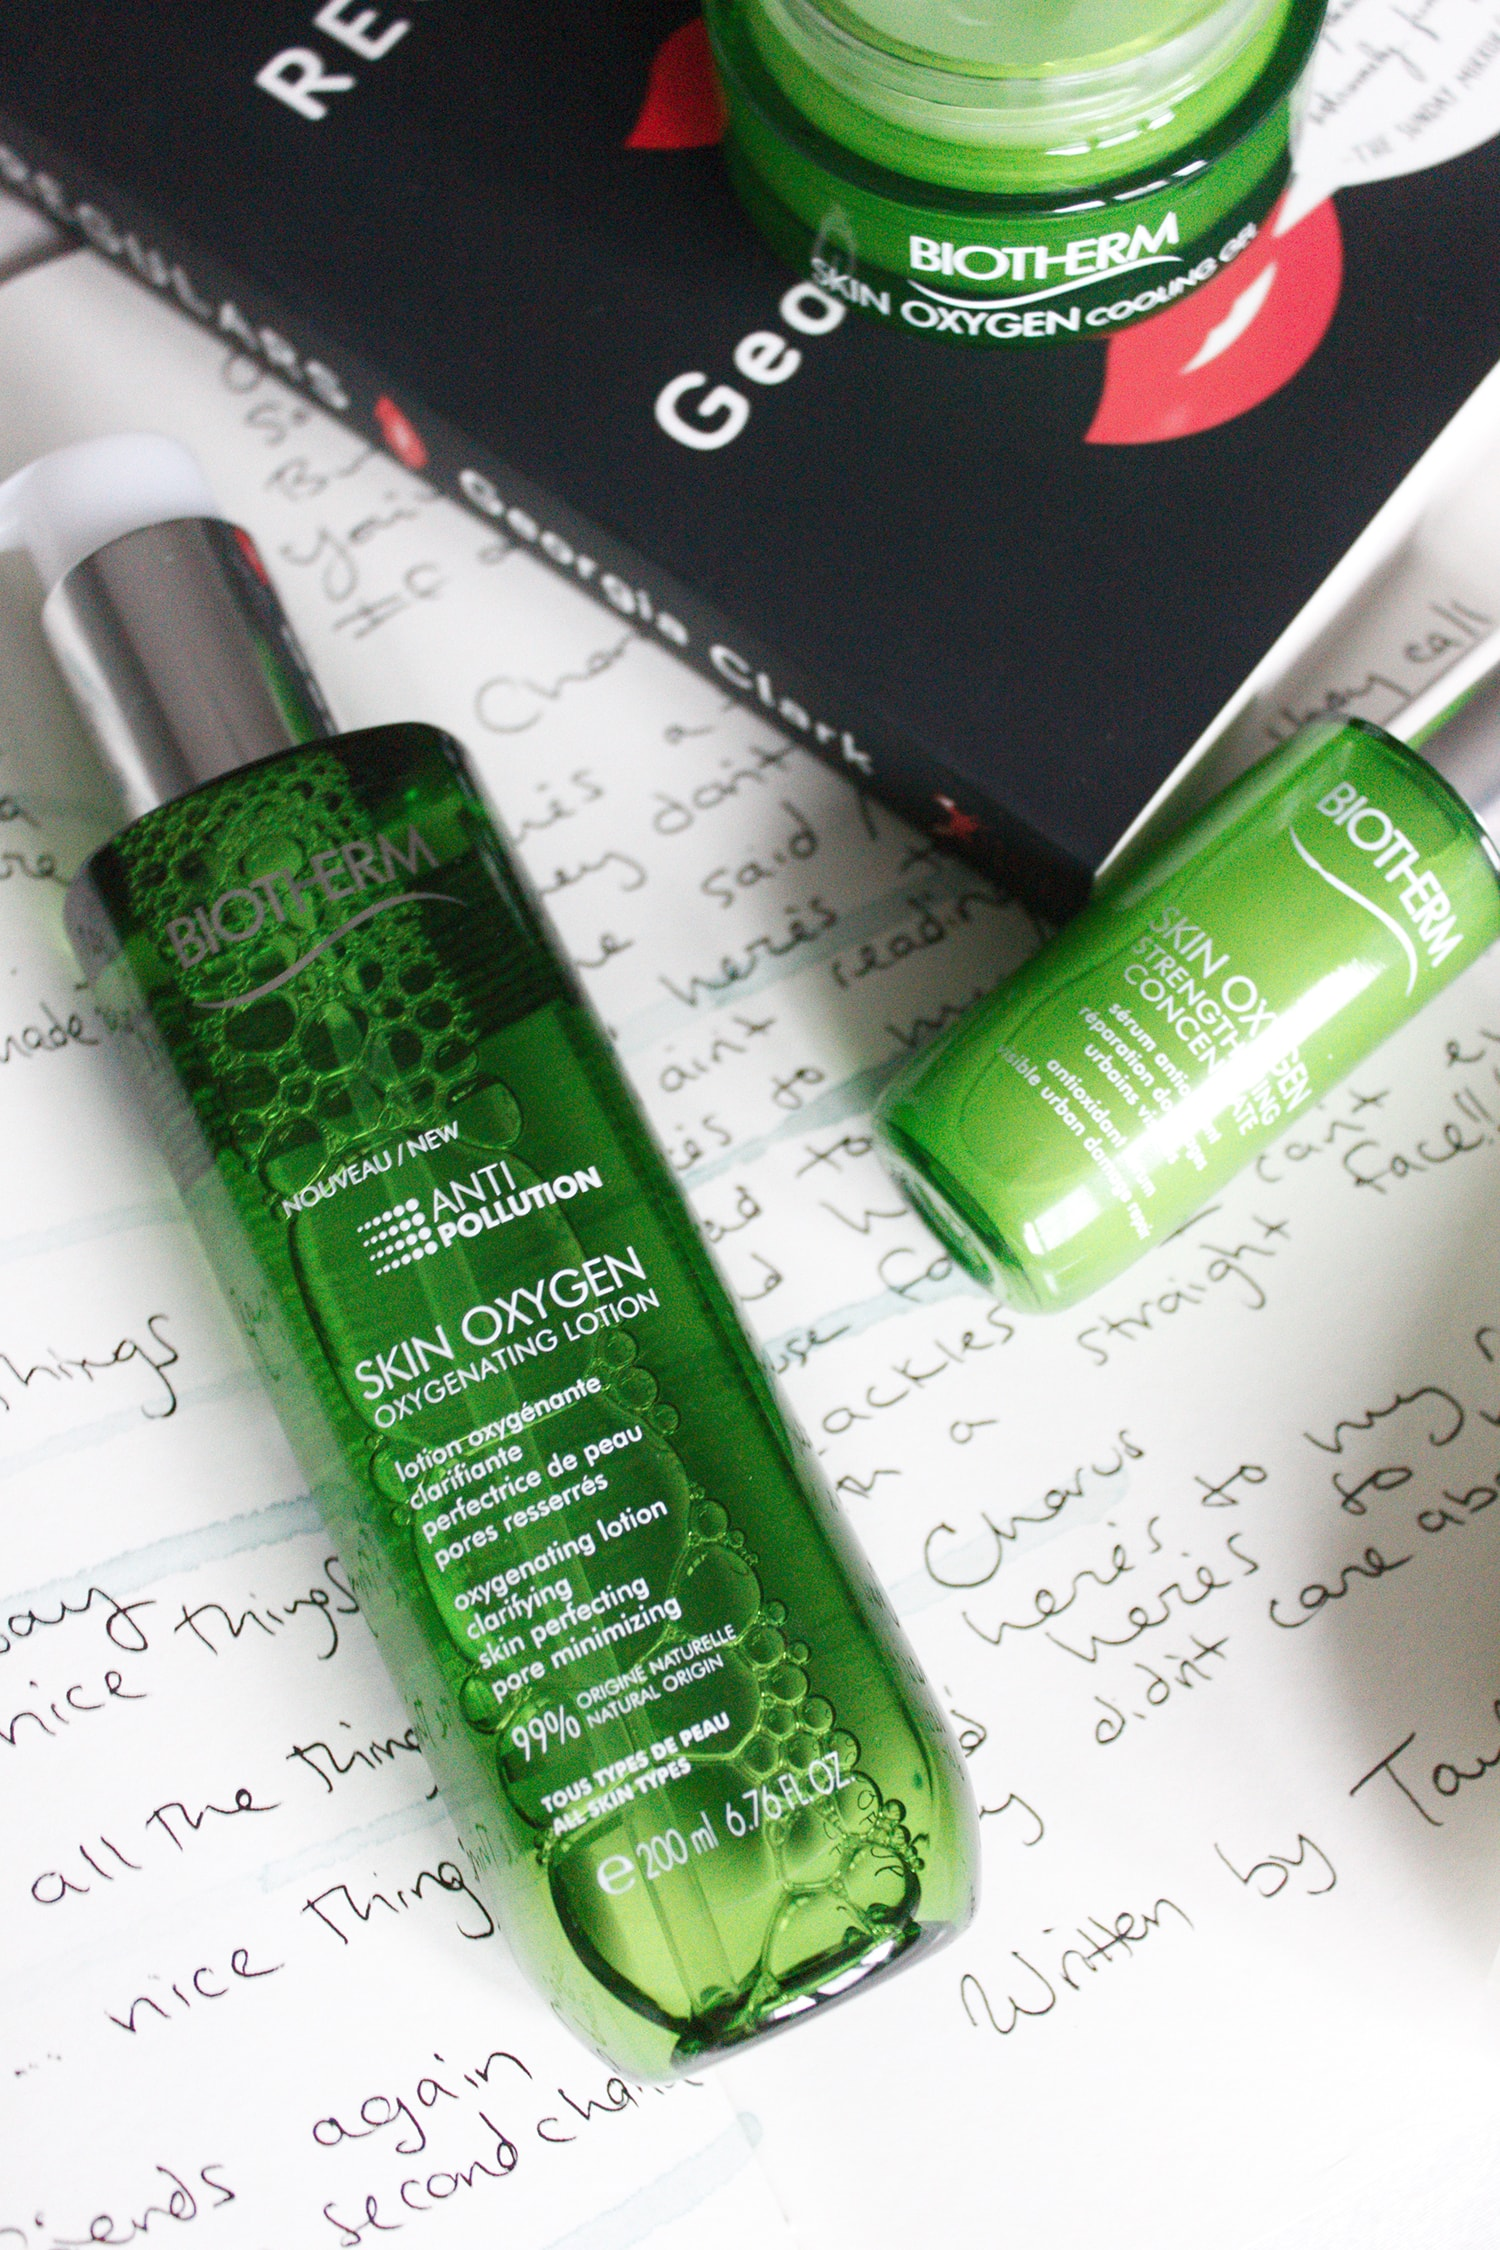 biotherm skin oxygen lotion and serum